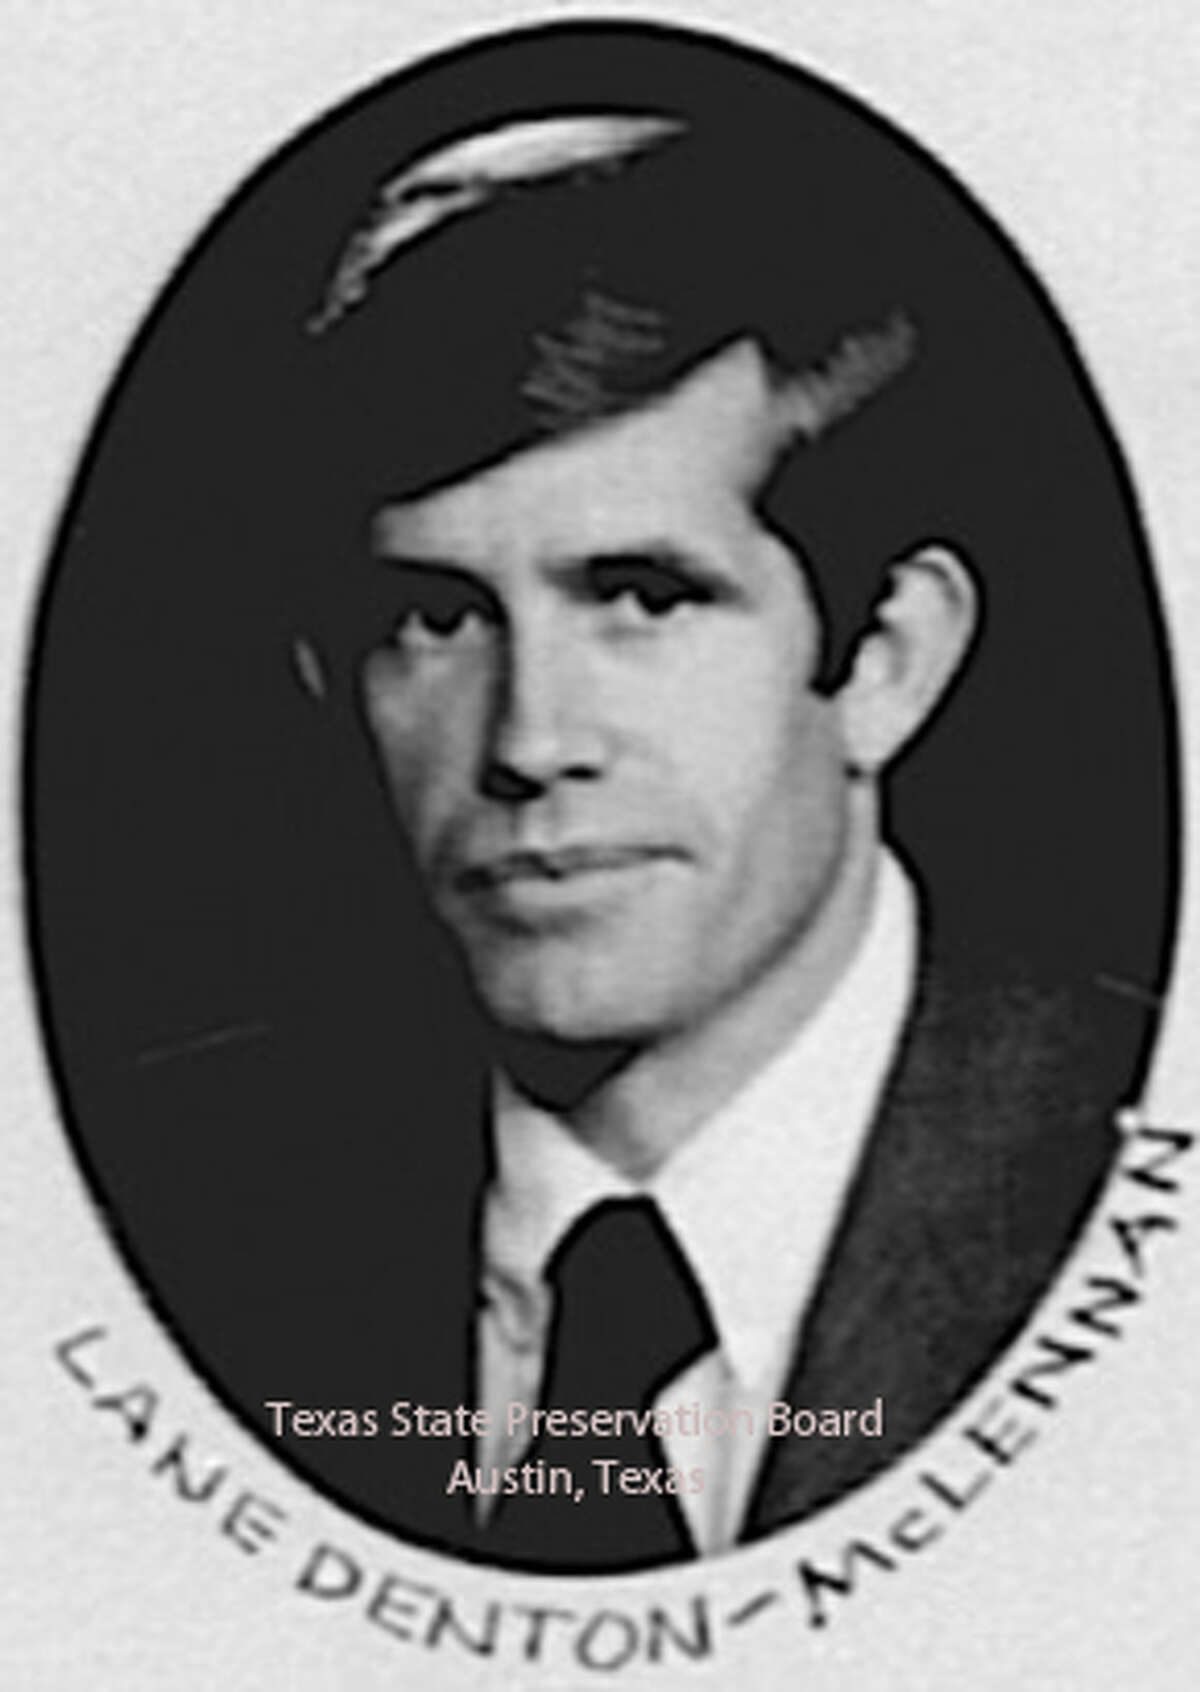 State Rep. Lane Denton, R-Waco In 1995, Lane Denton was charged with stealing money from the Texas Department of Public Safety Officers Association. Denton, who oversaw operations at the association after serving on the state legislature, reportedly funneled money from the association to a public relations firm. Denton was sentenced to six years probation and ordered to pay $67,000 restitution.